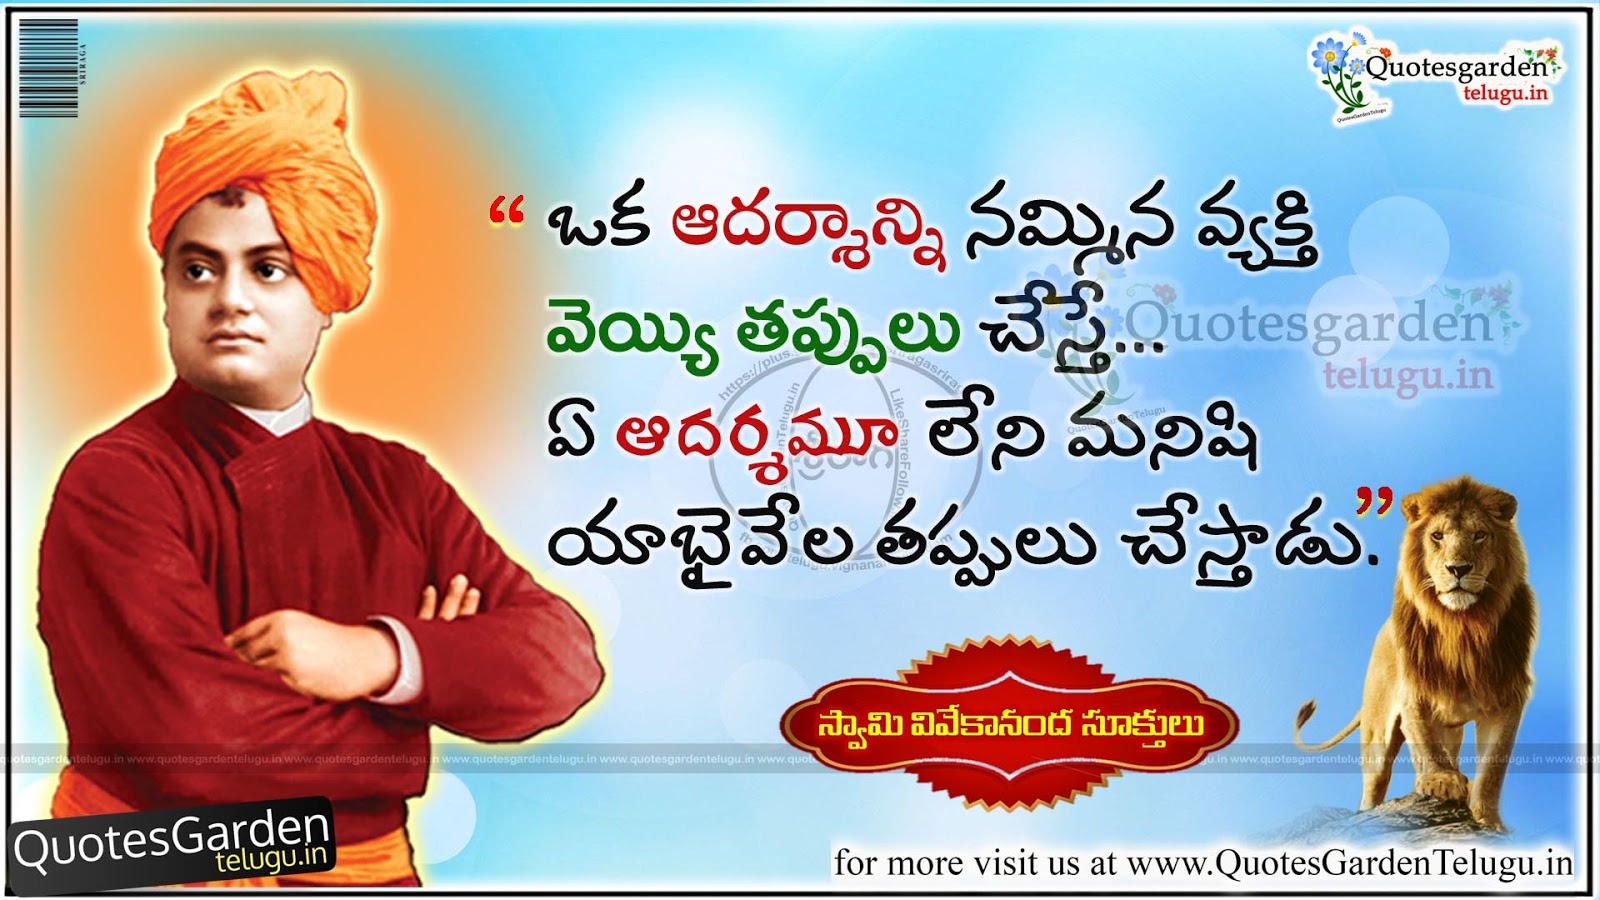 Quotes Vivekananda Swami Vivekananda Great Quotes And Sayings In Telugu  Quotes